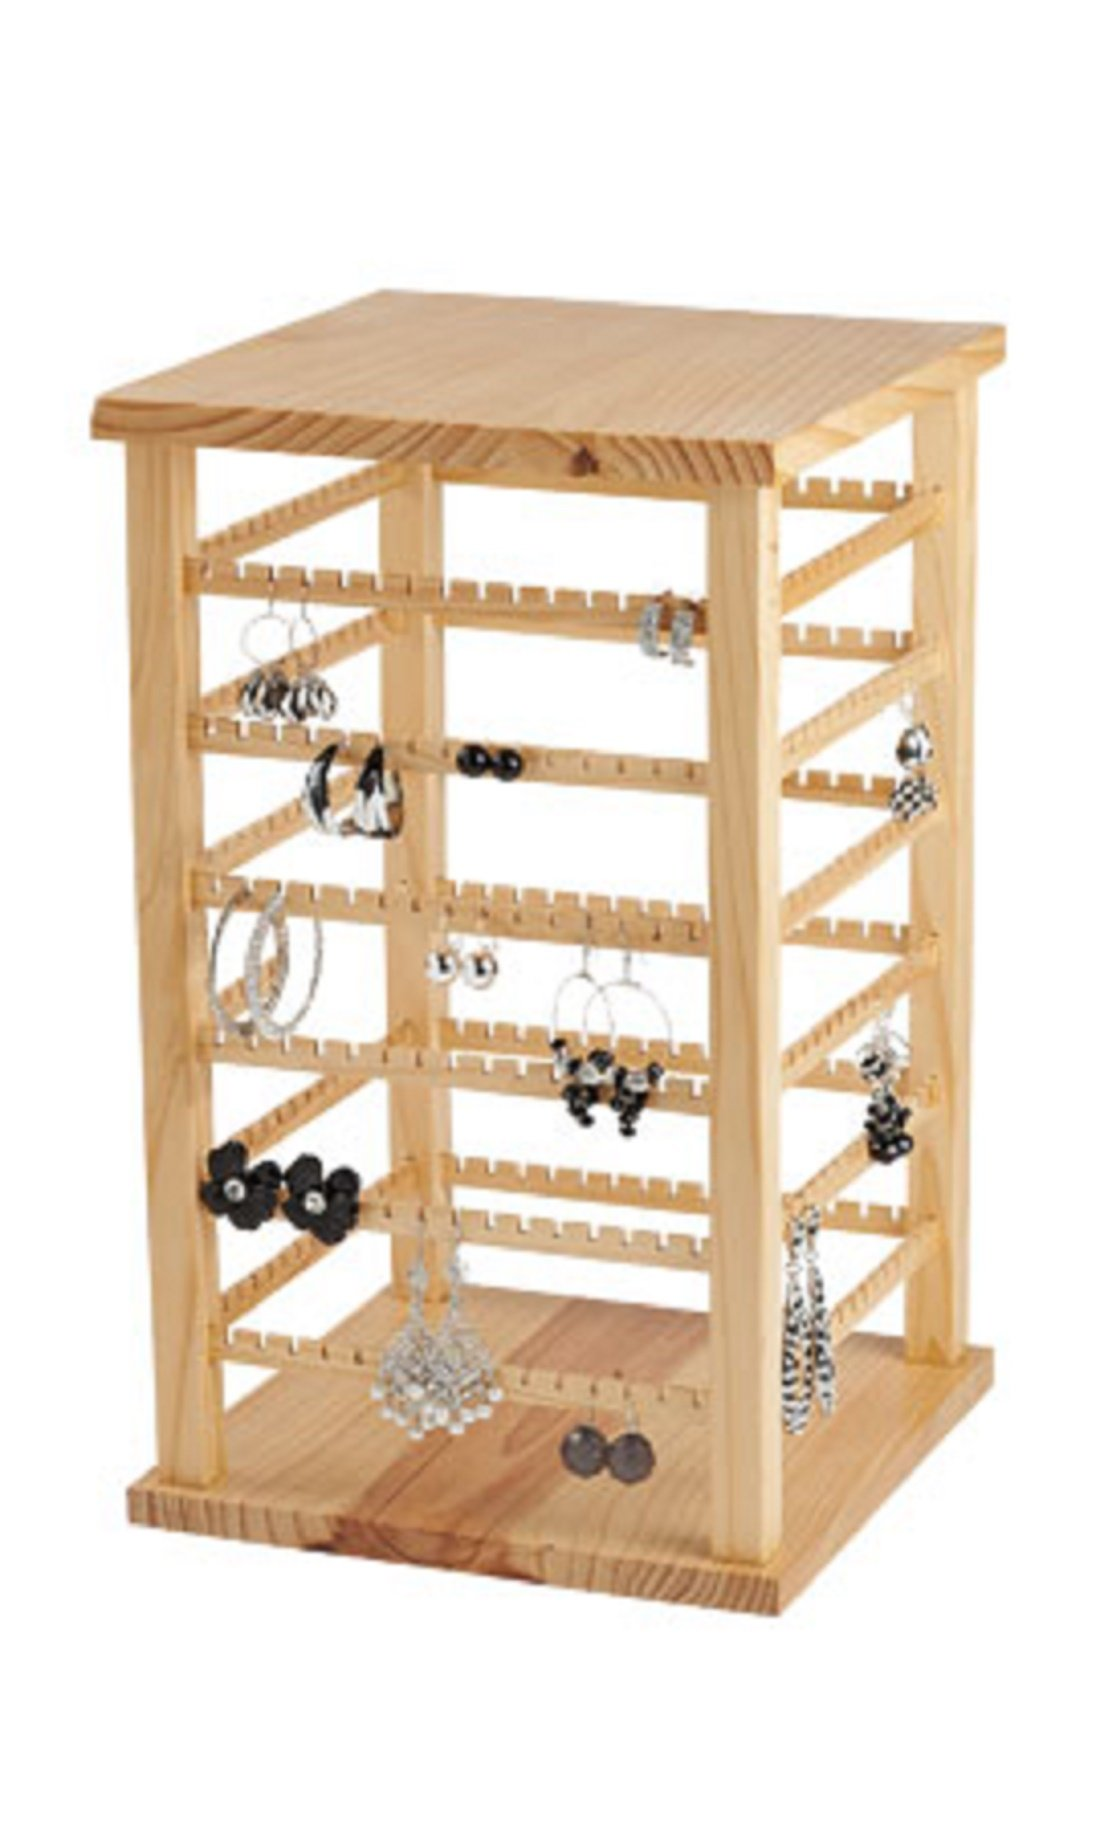 Wood Earring Display Large,• Natural Wood Finish •Overall Dimension 9 3/8''w X 9 3/8''d X 16 3/8''h,